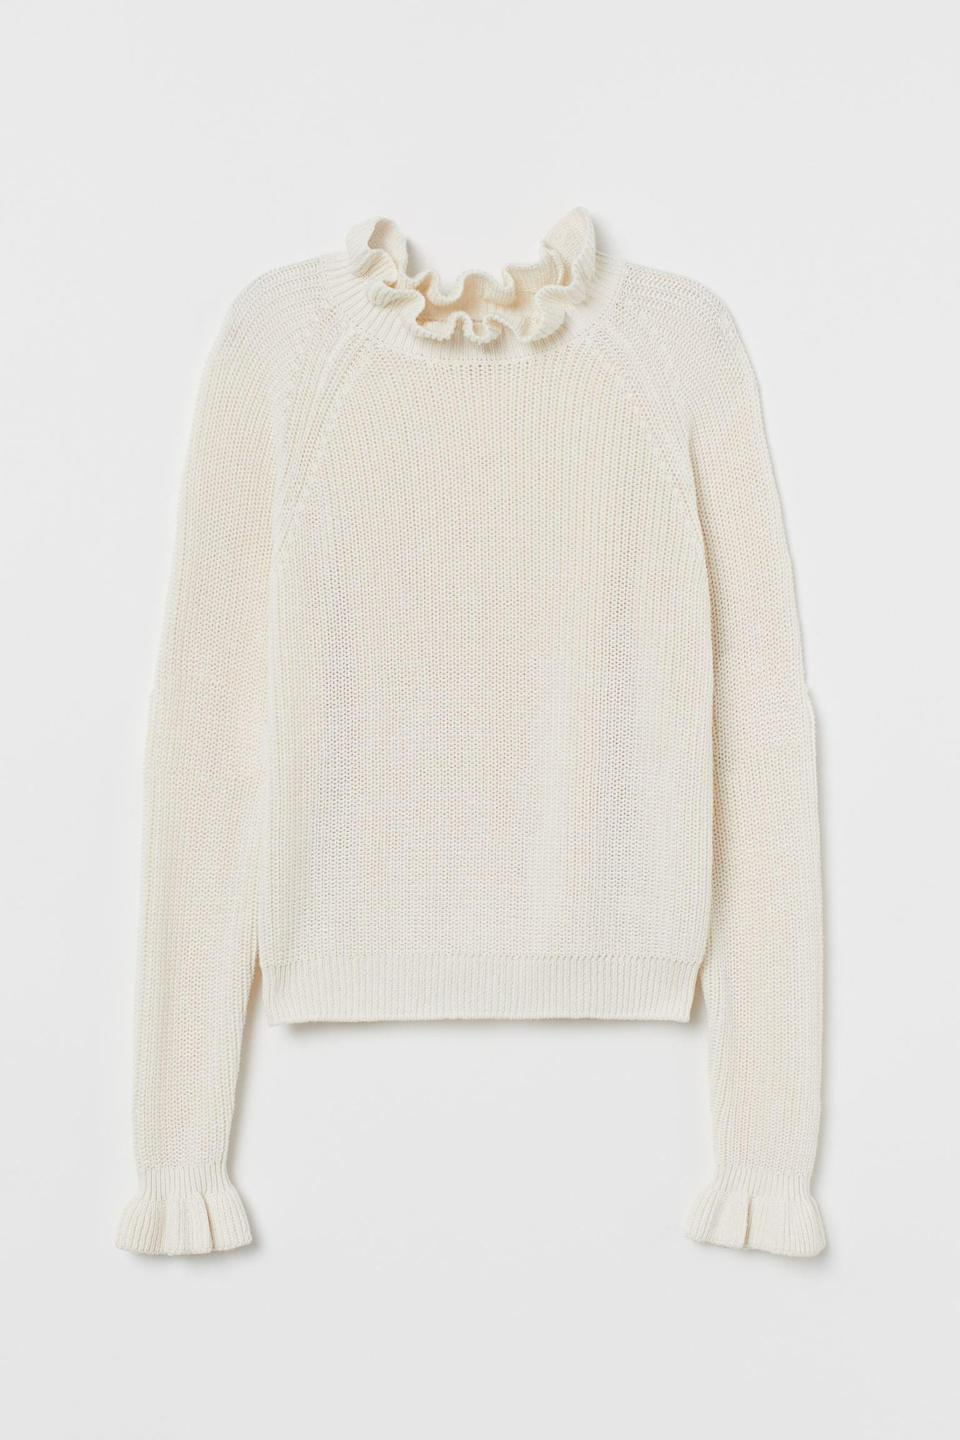 <p>This <span>H&amp;M Ruffled Ribbed Sweater</span> ($17, originally $25) is a polished pick for a work happy hour.</p>